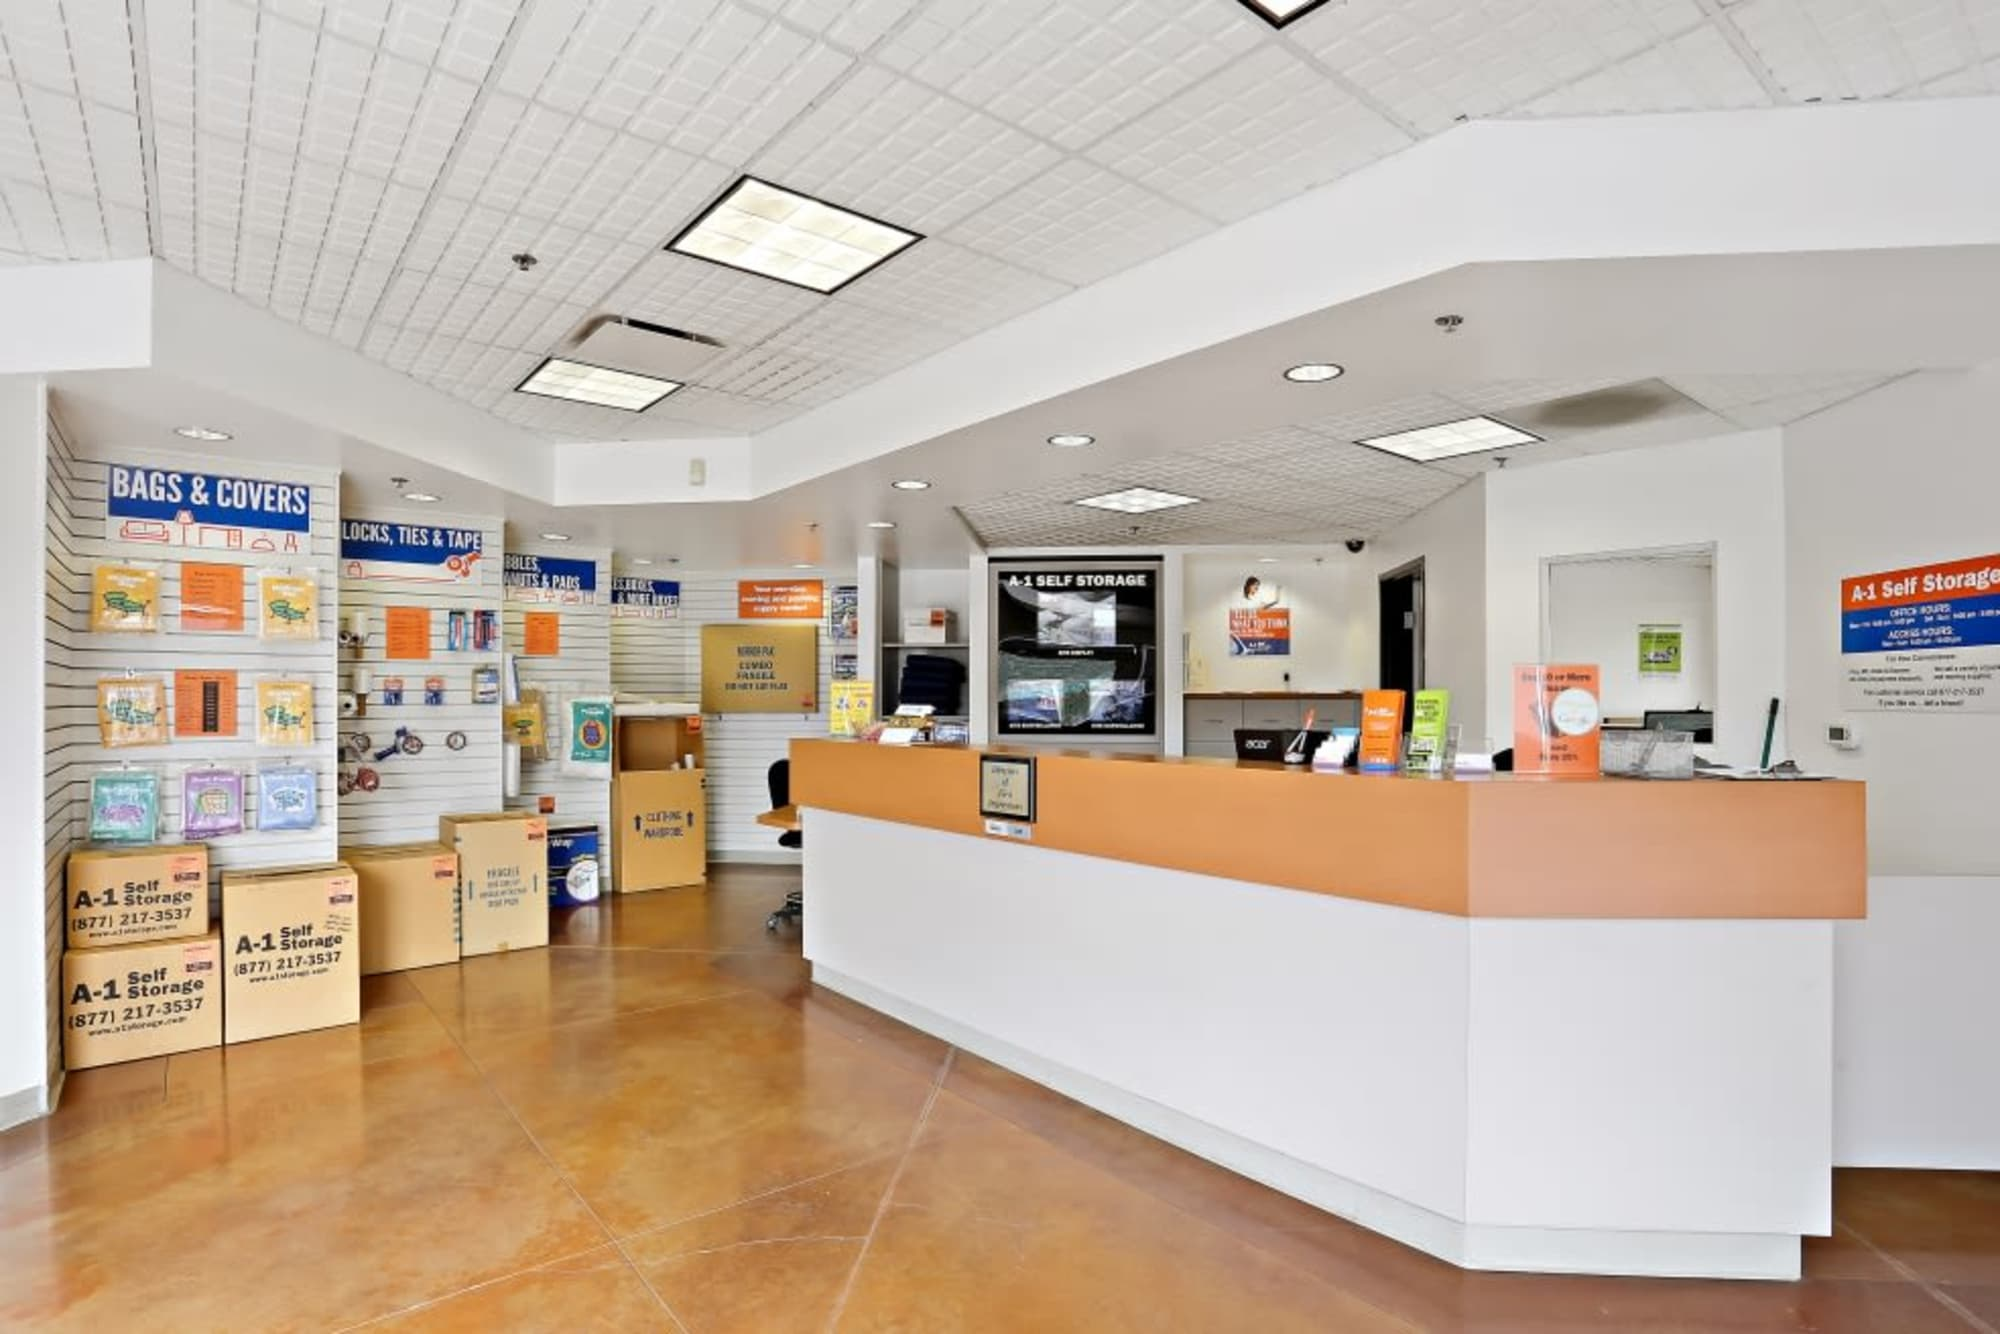 The leasing office and packing supplies at A-1 Self Storage